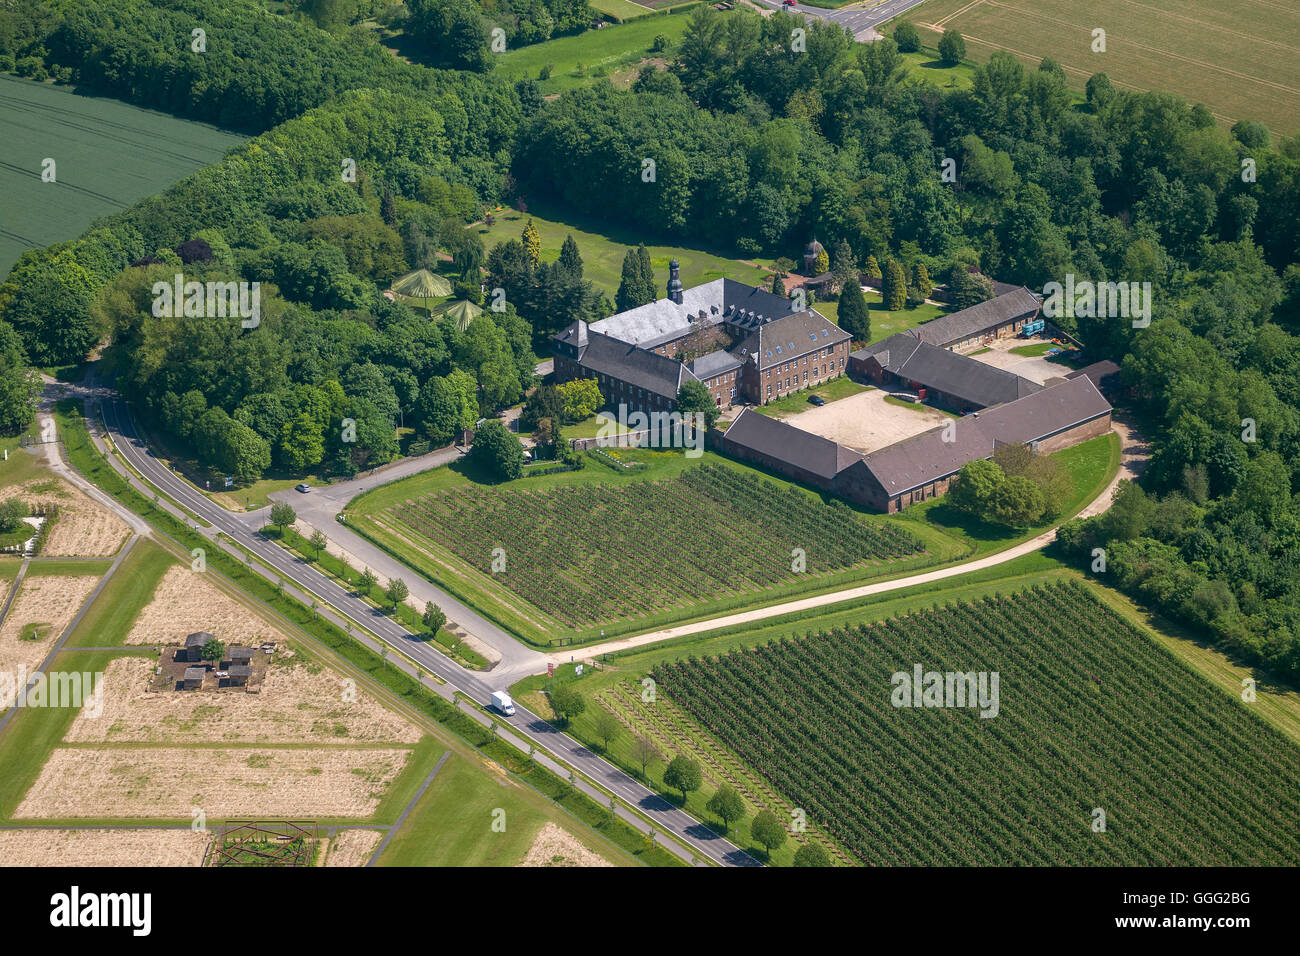 aerial view the nikolauskloster monastery at schloss dyck j chen stock photo royalty free. Black Bedroom Furniture Sets. Home Design Ideas